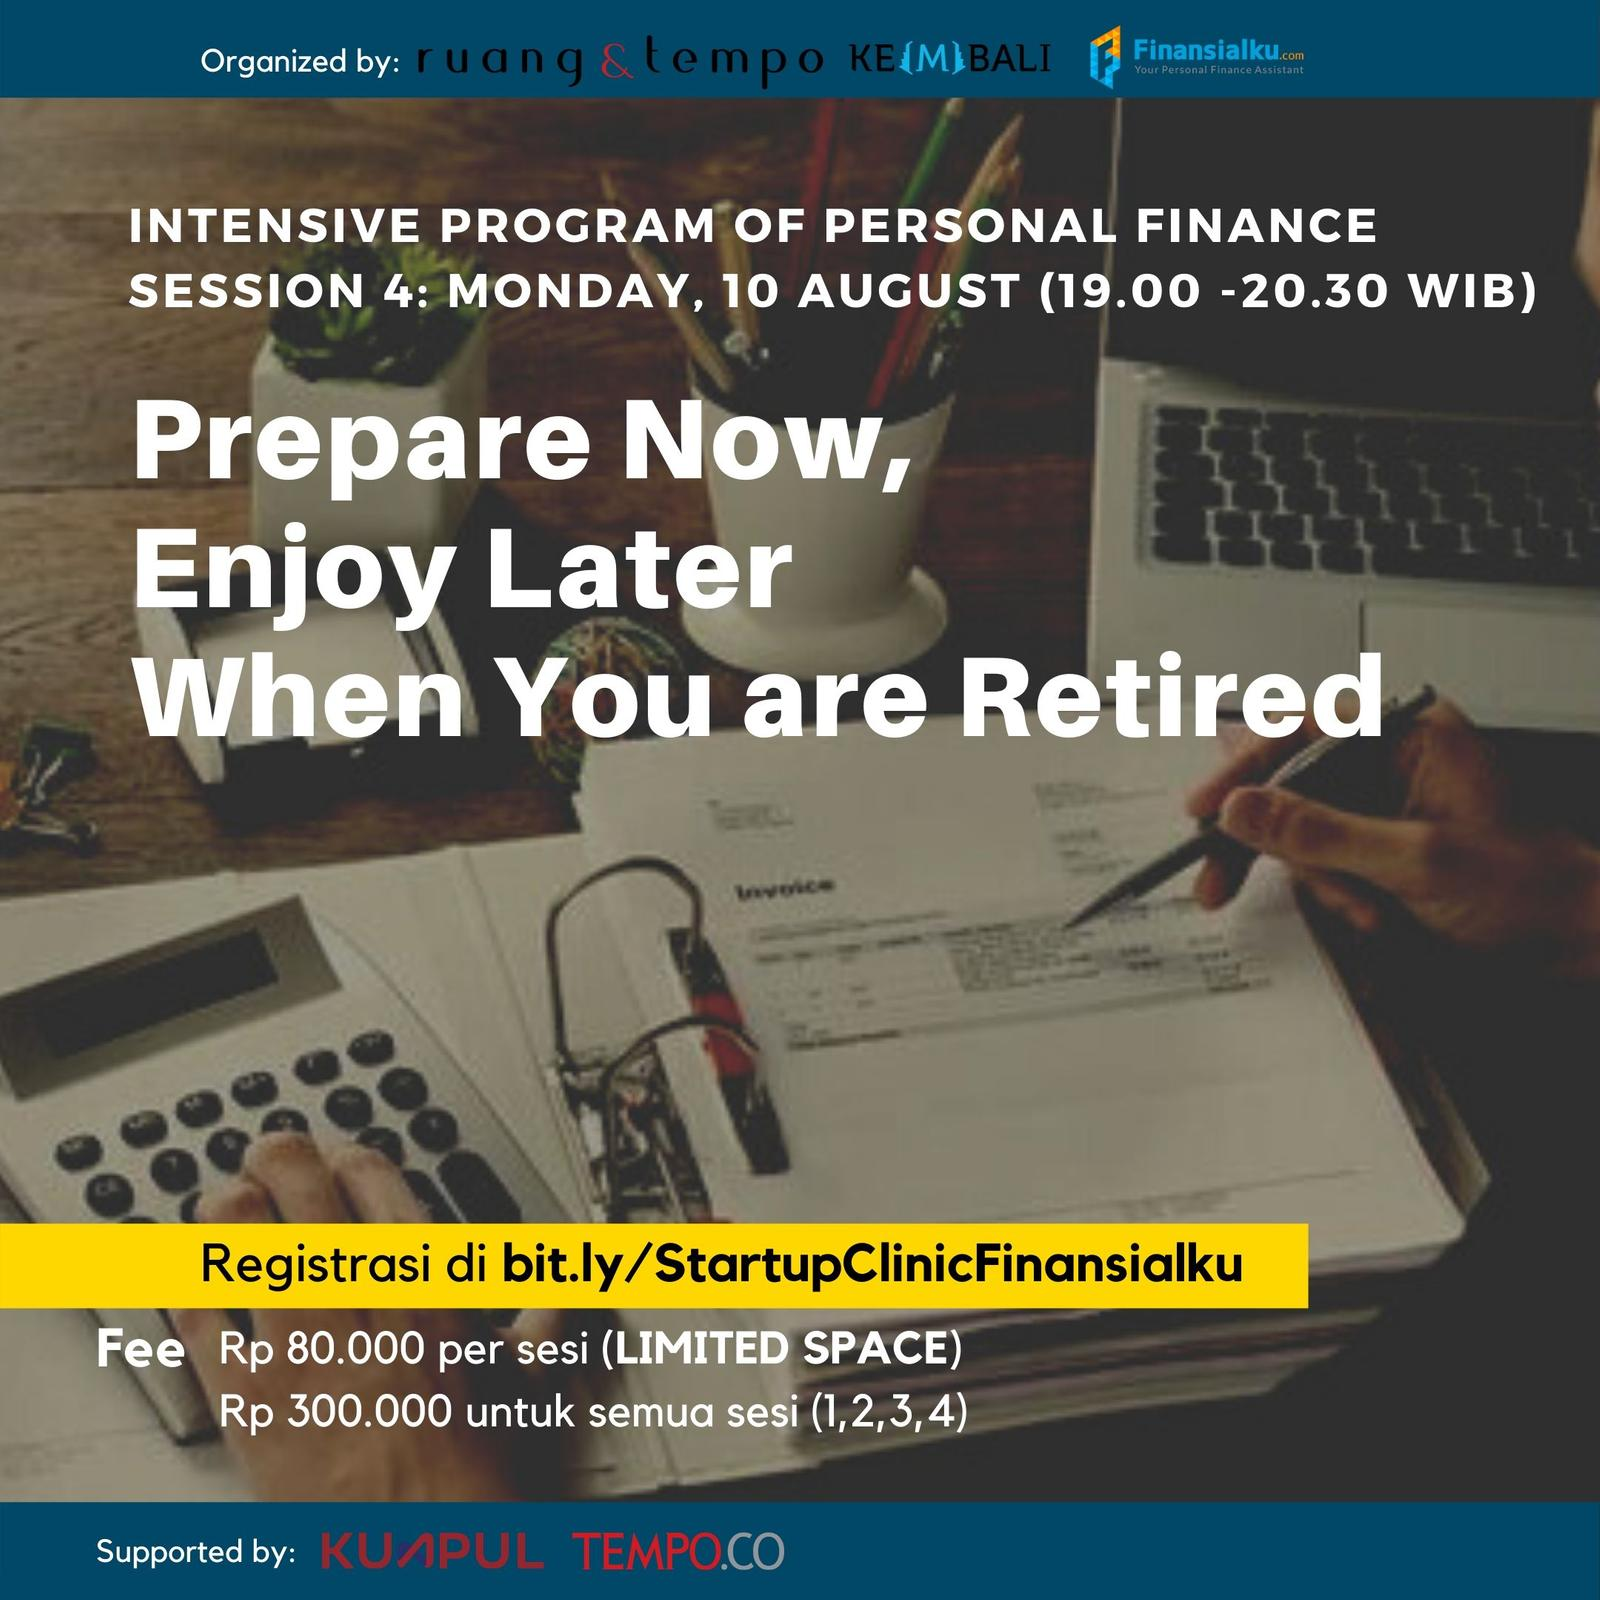 Startup Clinic x Finansialku: Prepare Now Enjoy Later When You Retired